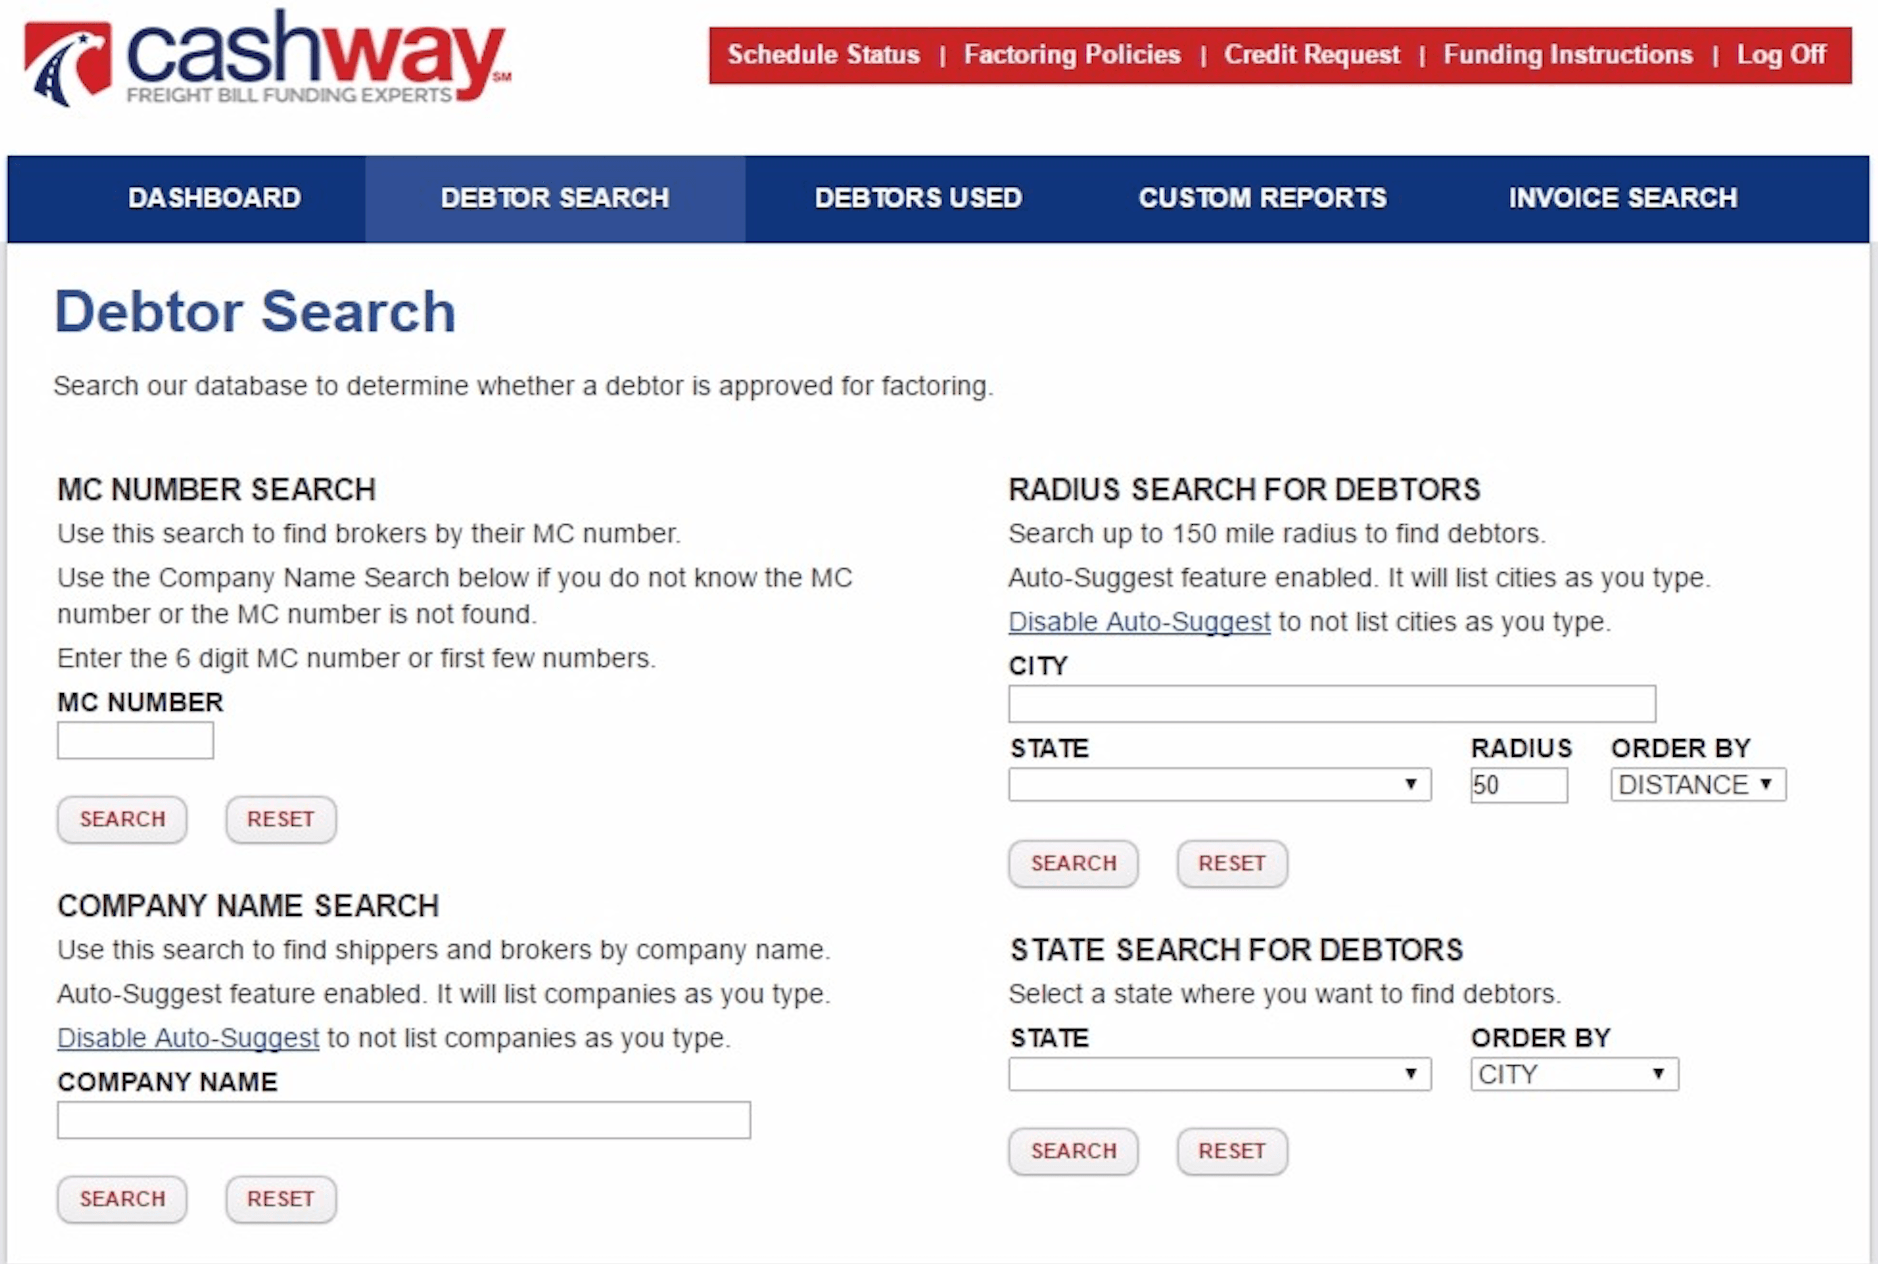 Cashway Online Account Manager Broker and Shipper Search for Factoring Clients